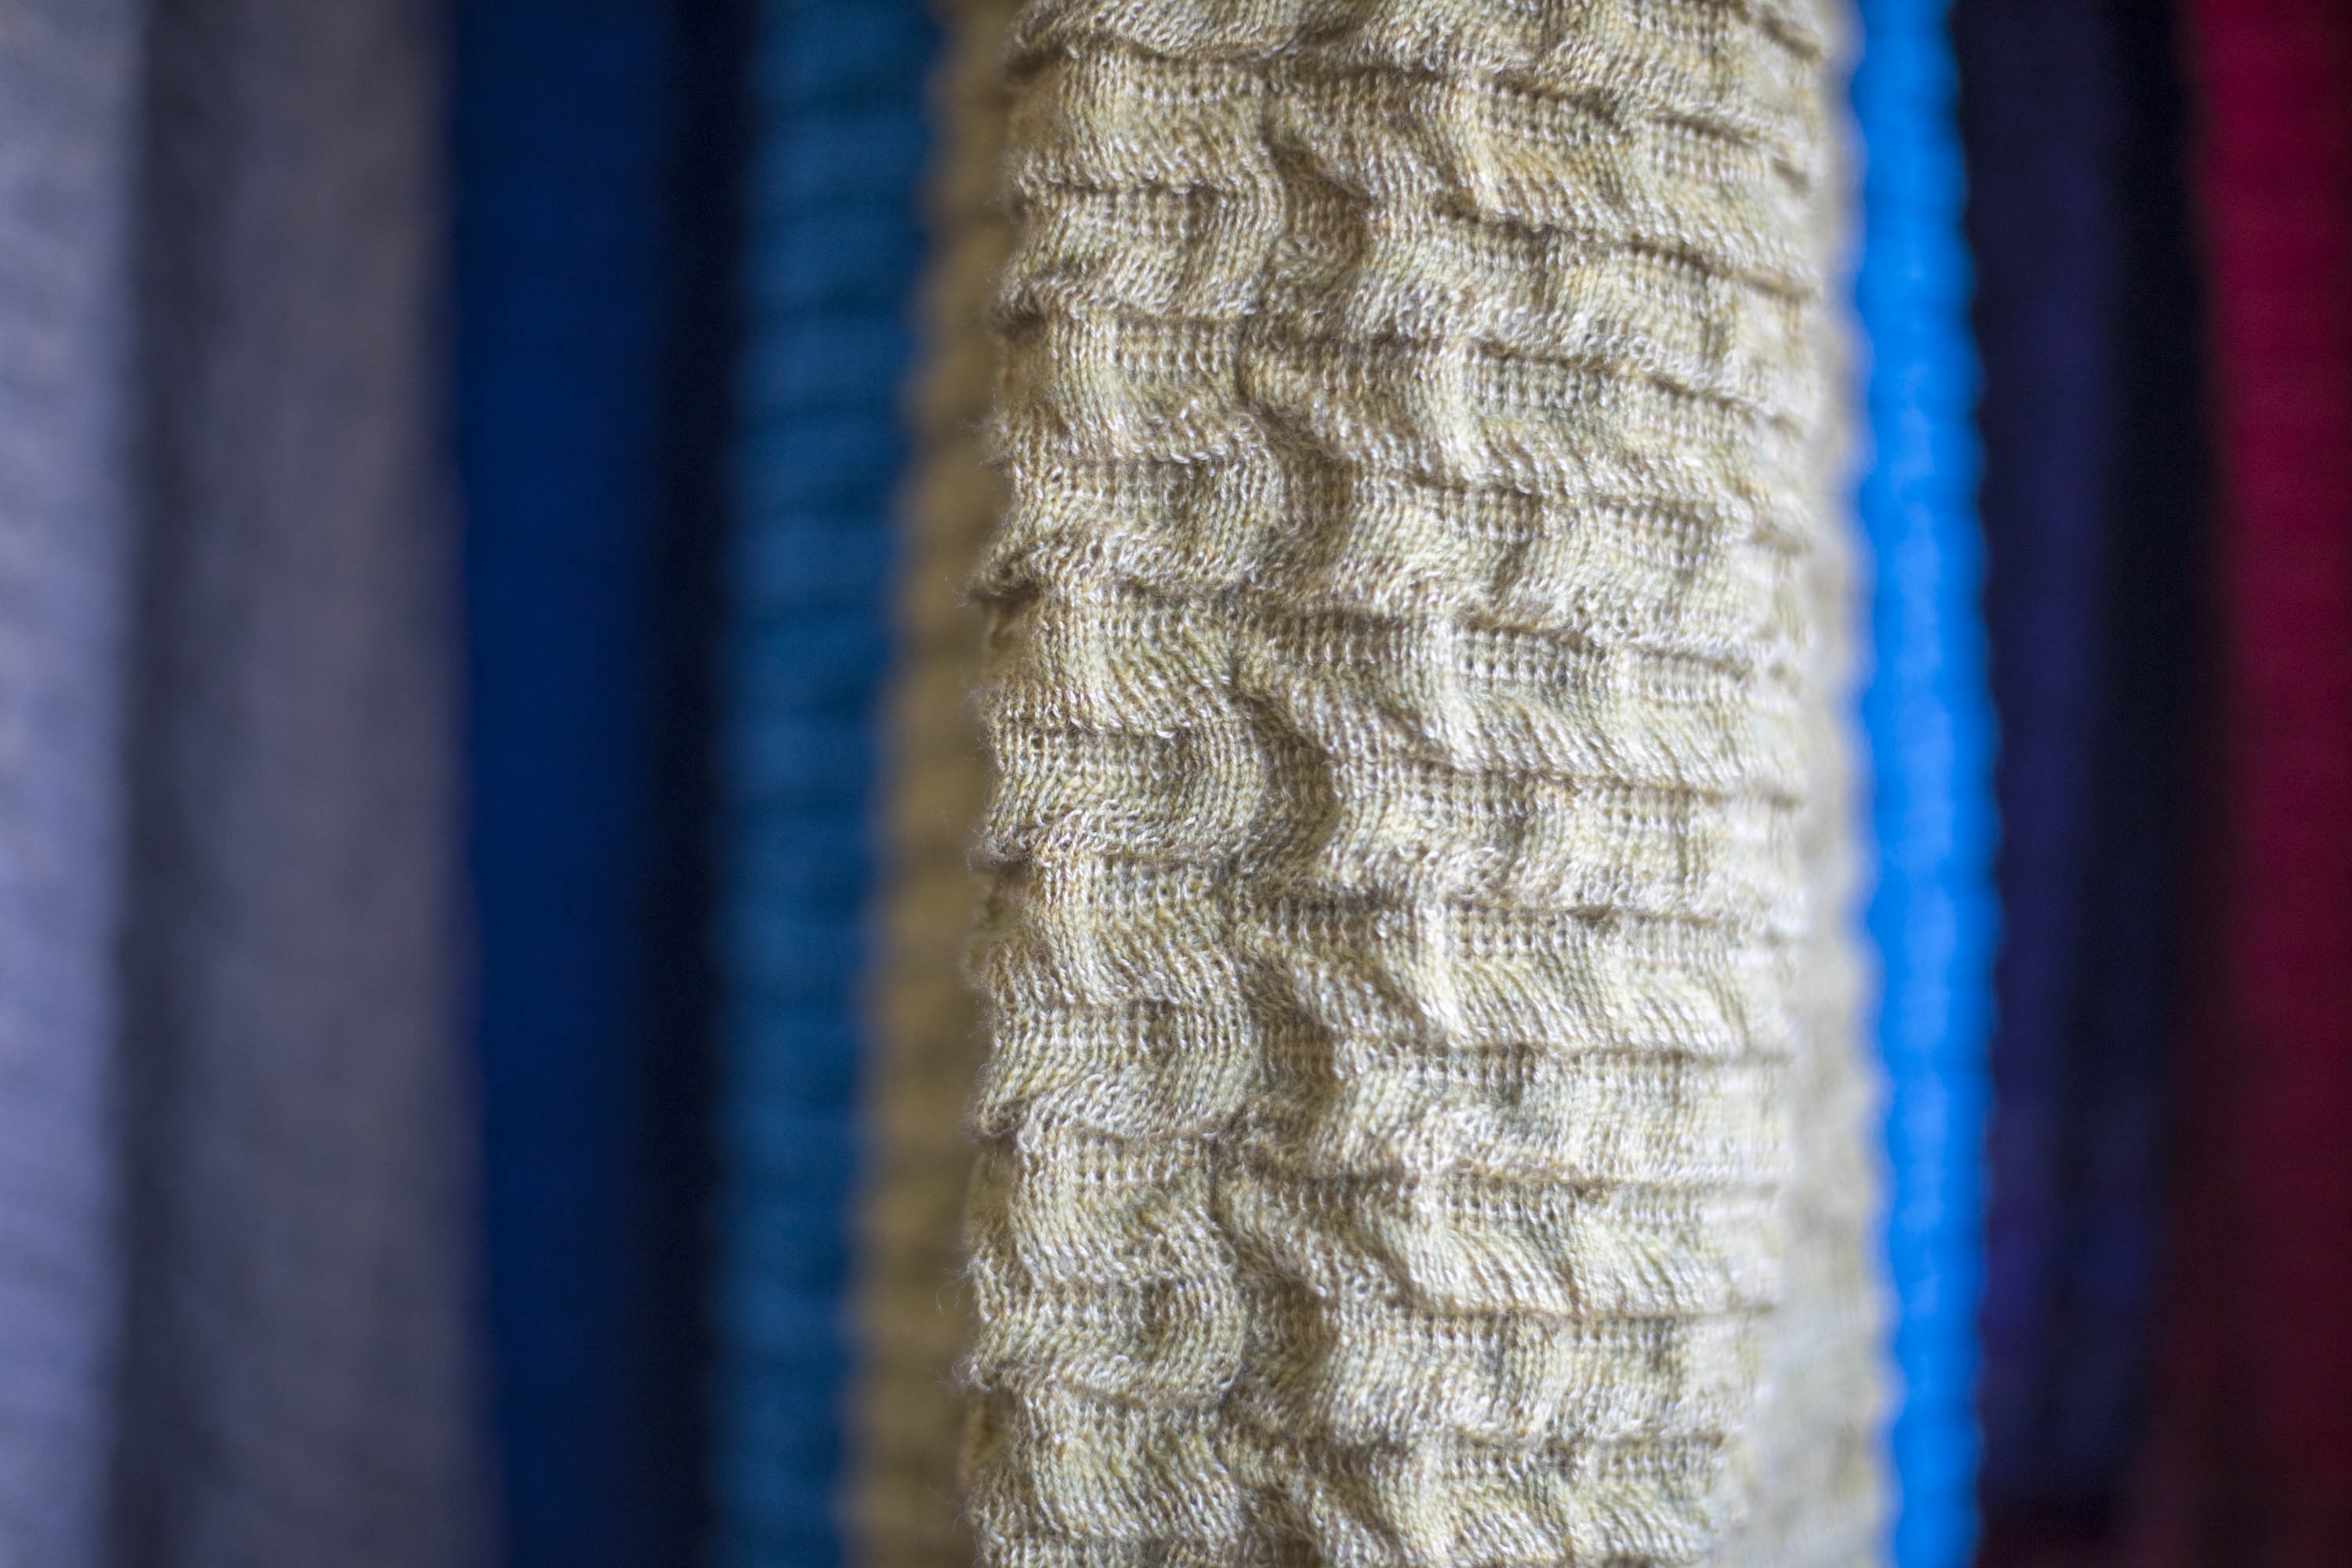 Close-up of Rigg Shetland knit textile in the Nielanell studio, Hoswick